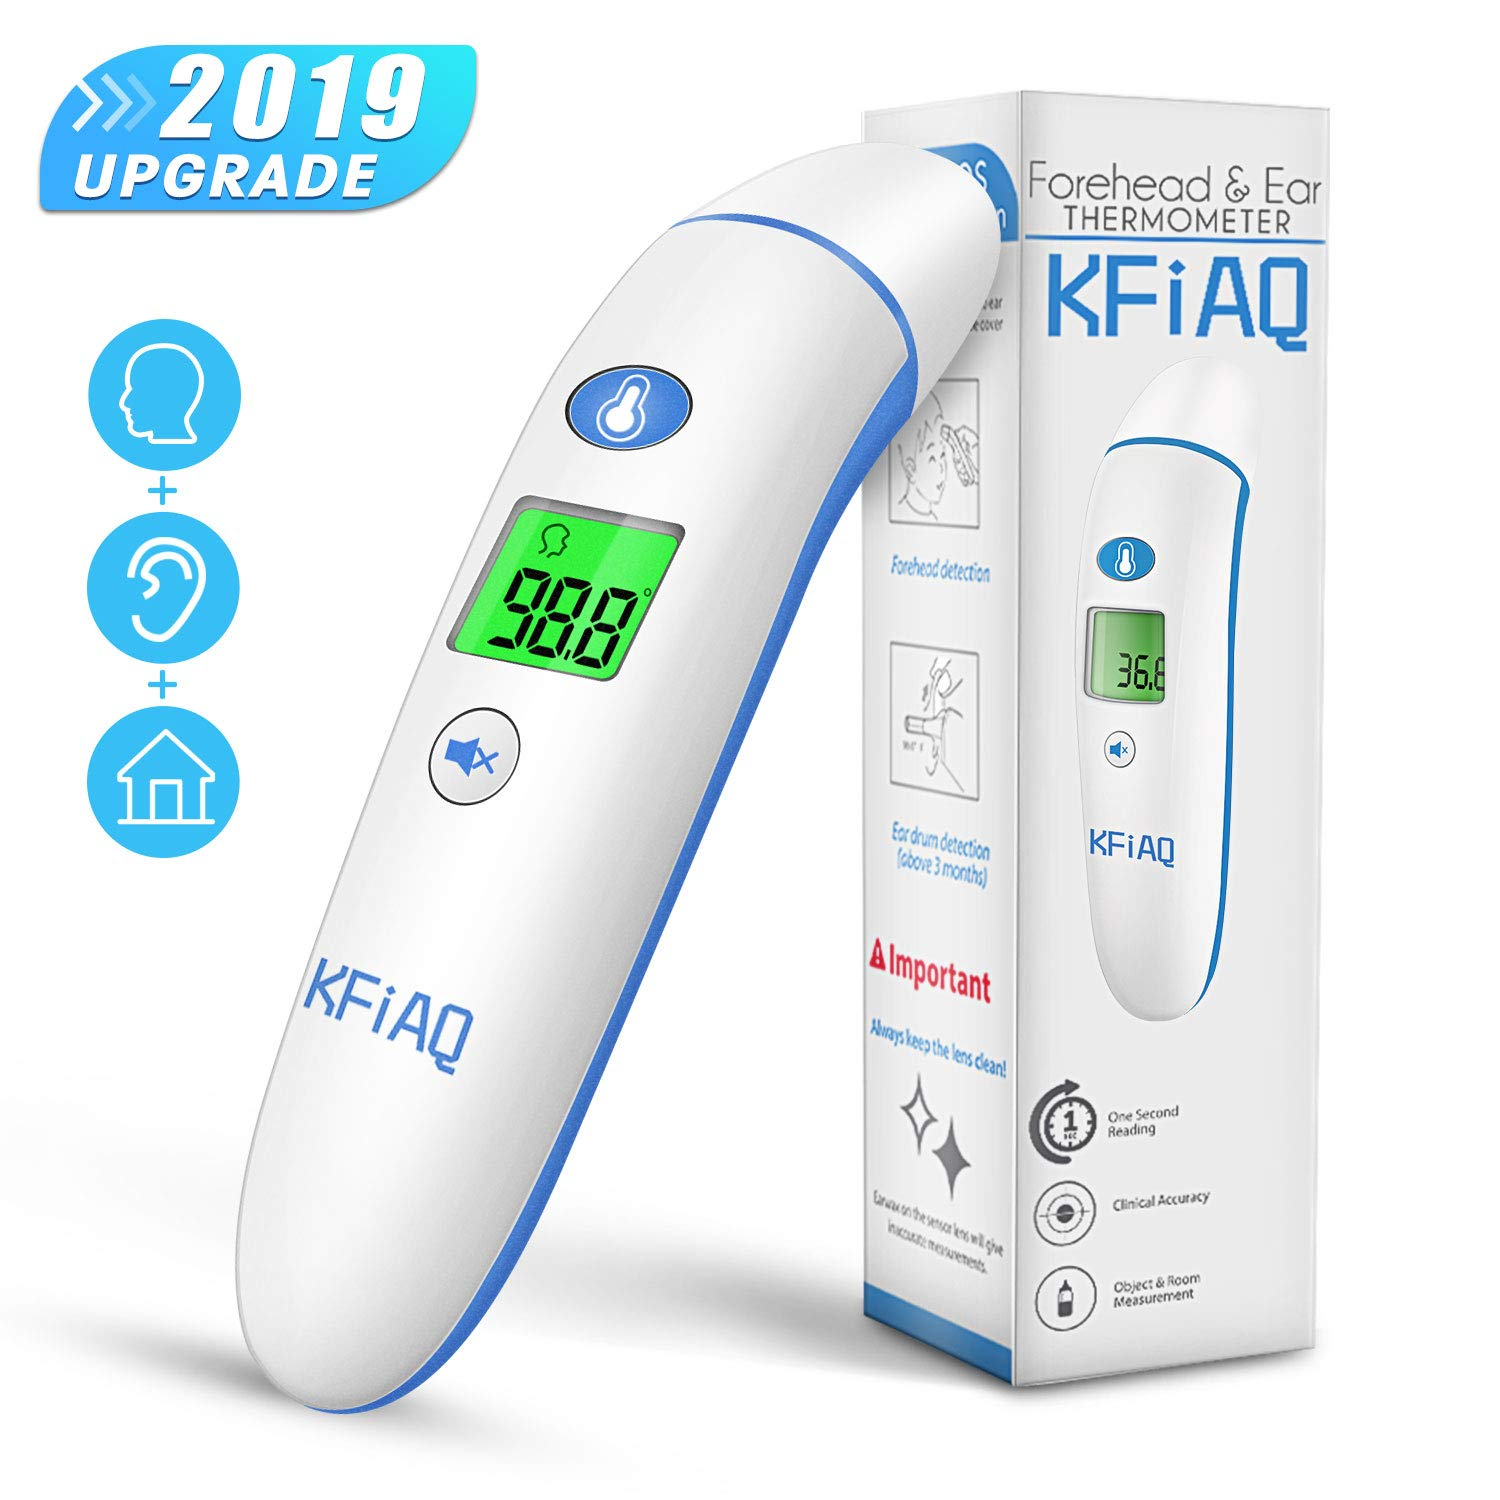 Upgraded Baby Thermometer Forehead and Ear Thermometer, Medical Temporal Thermometer for Fever, Digital Infrared Temperature Thermometer for Baby Kids Adults by AERZETIX